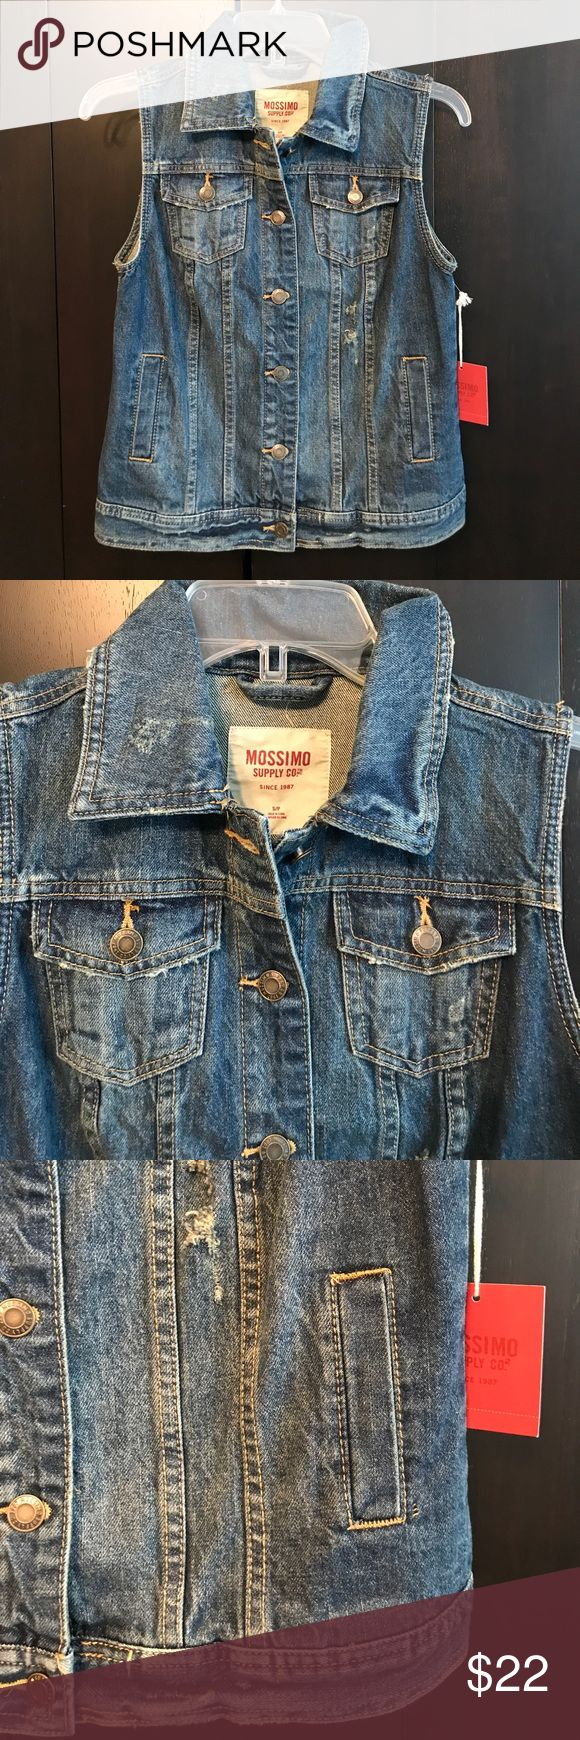 NWT Mossimo sleeveless jean jacket NWT Mossimo sleeveless jean jacket. I bought the wrong size ☹️ Mossimo Supply Co Jackets & Coats Jean Jackets